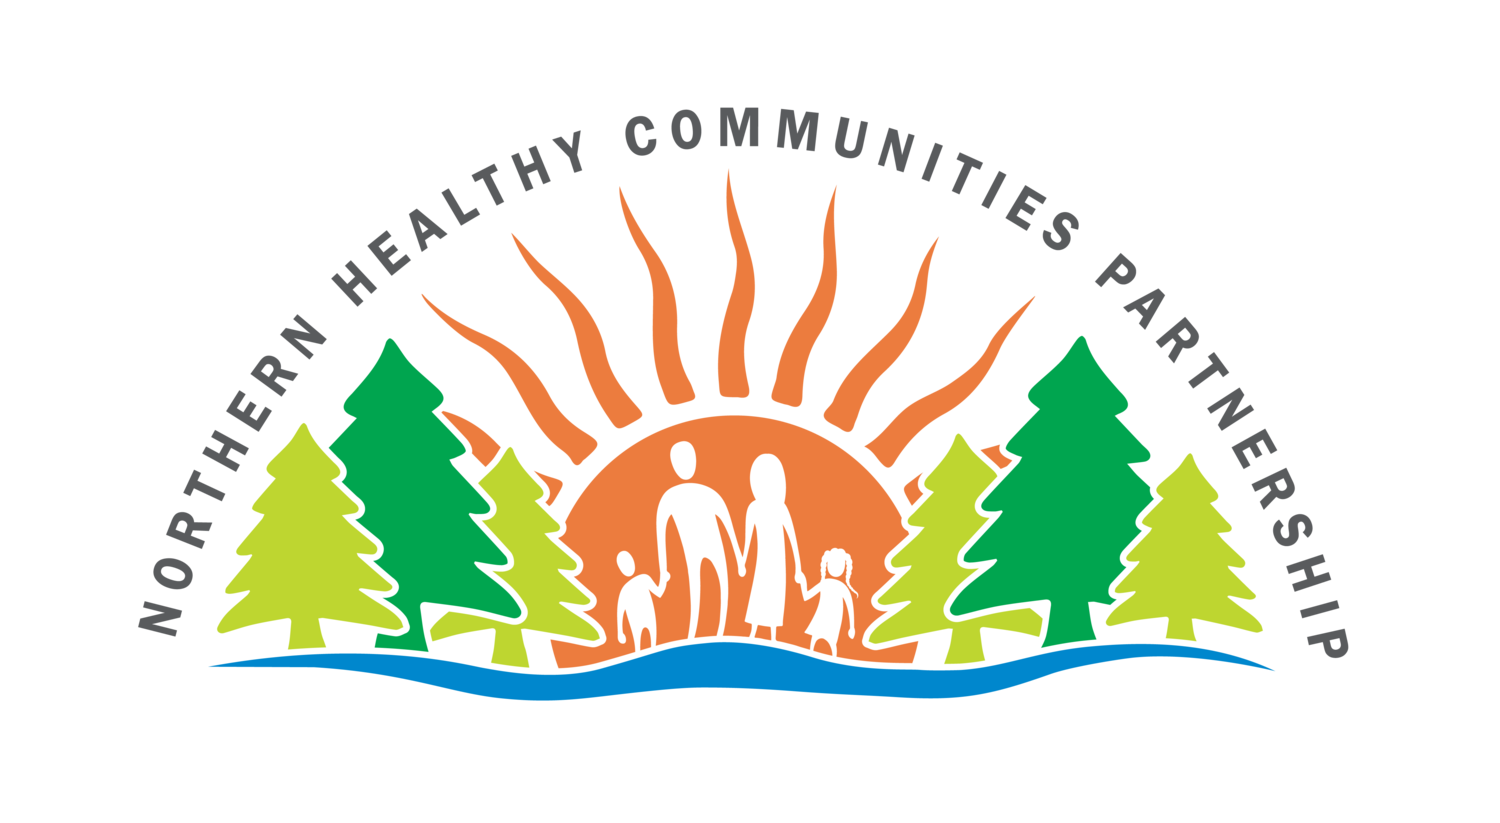 Northern Healthy Communities Partnership